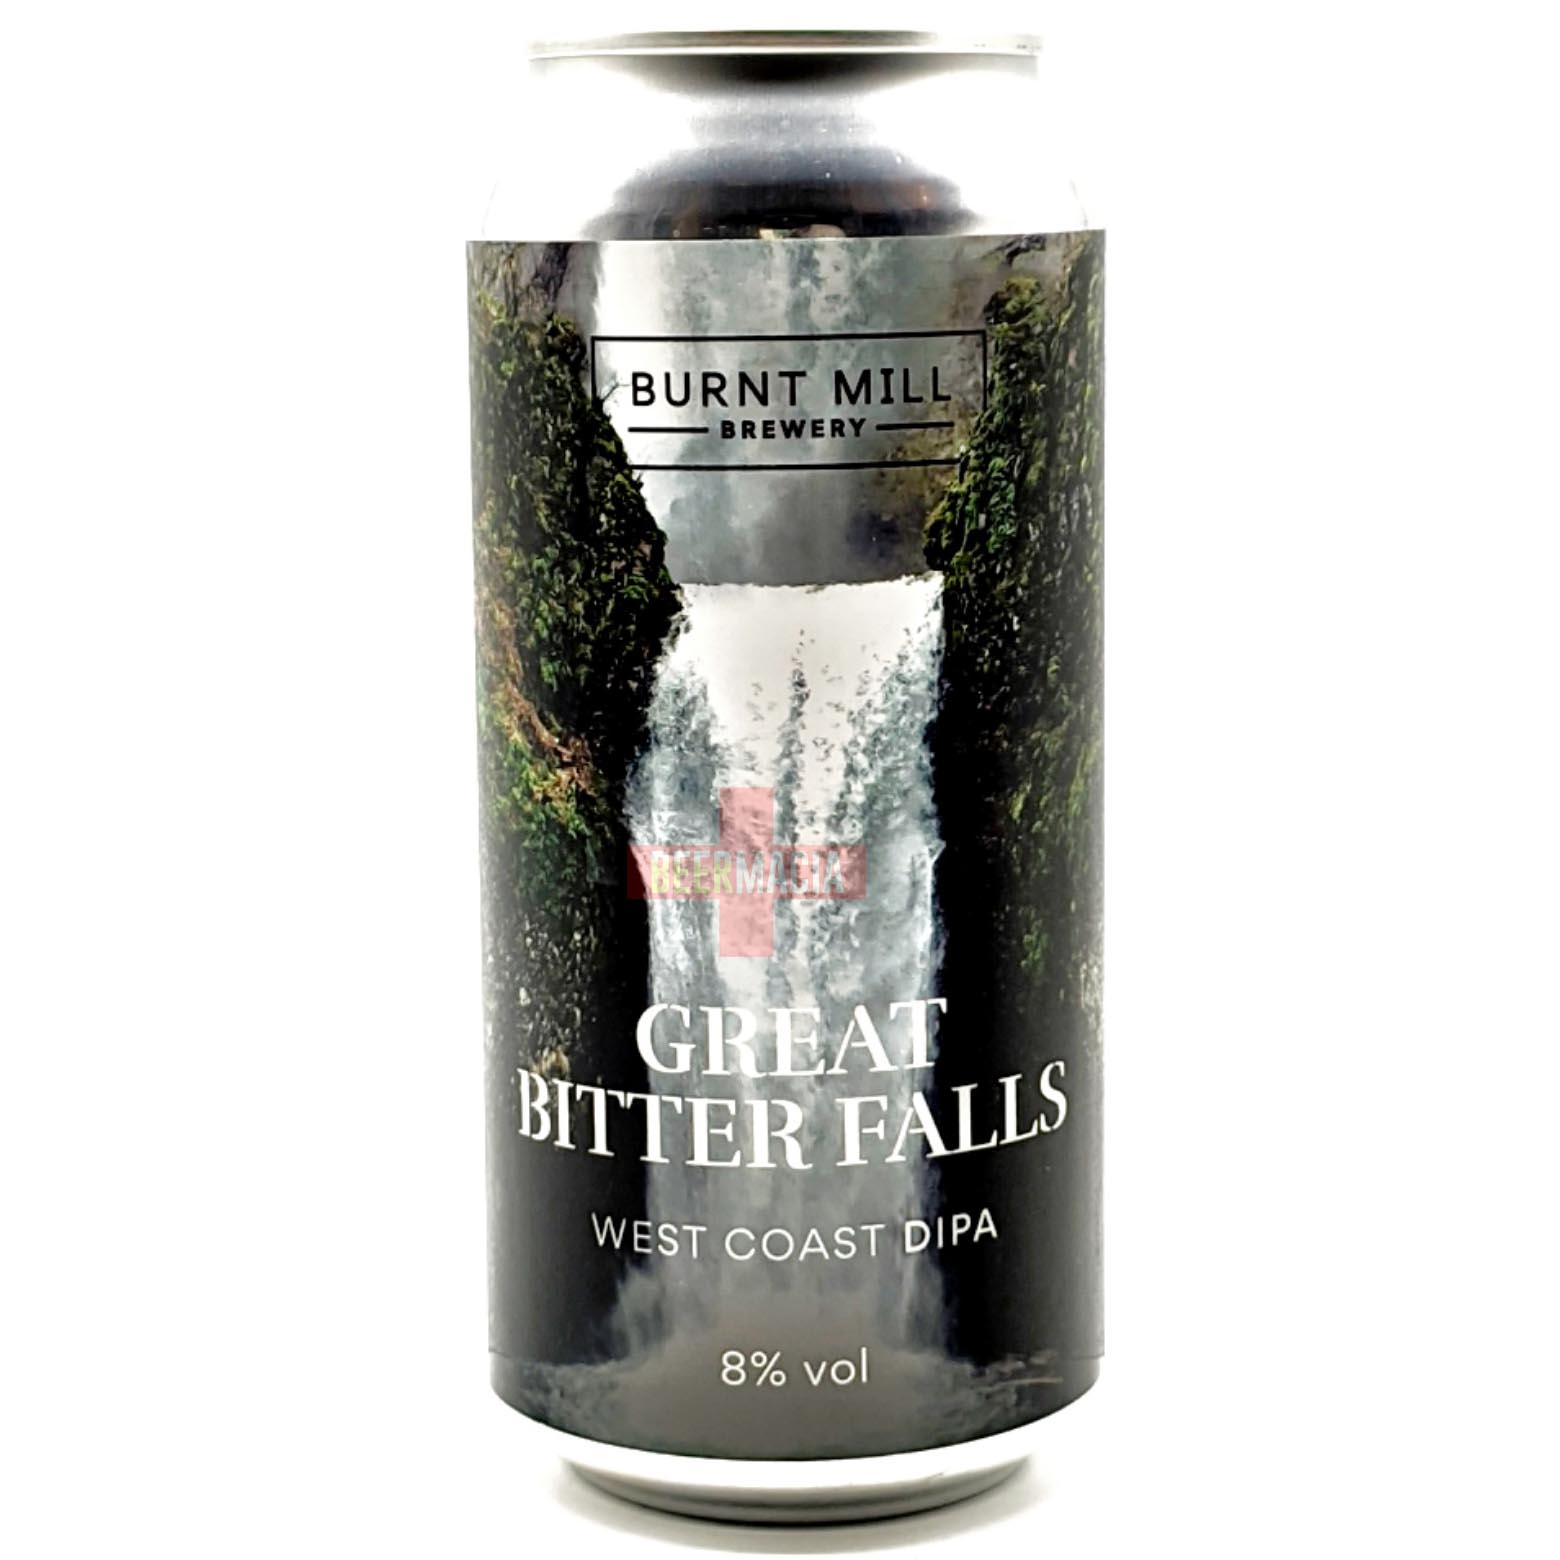 Burnt Mill Brewery - Great Bitter Falls 44cl